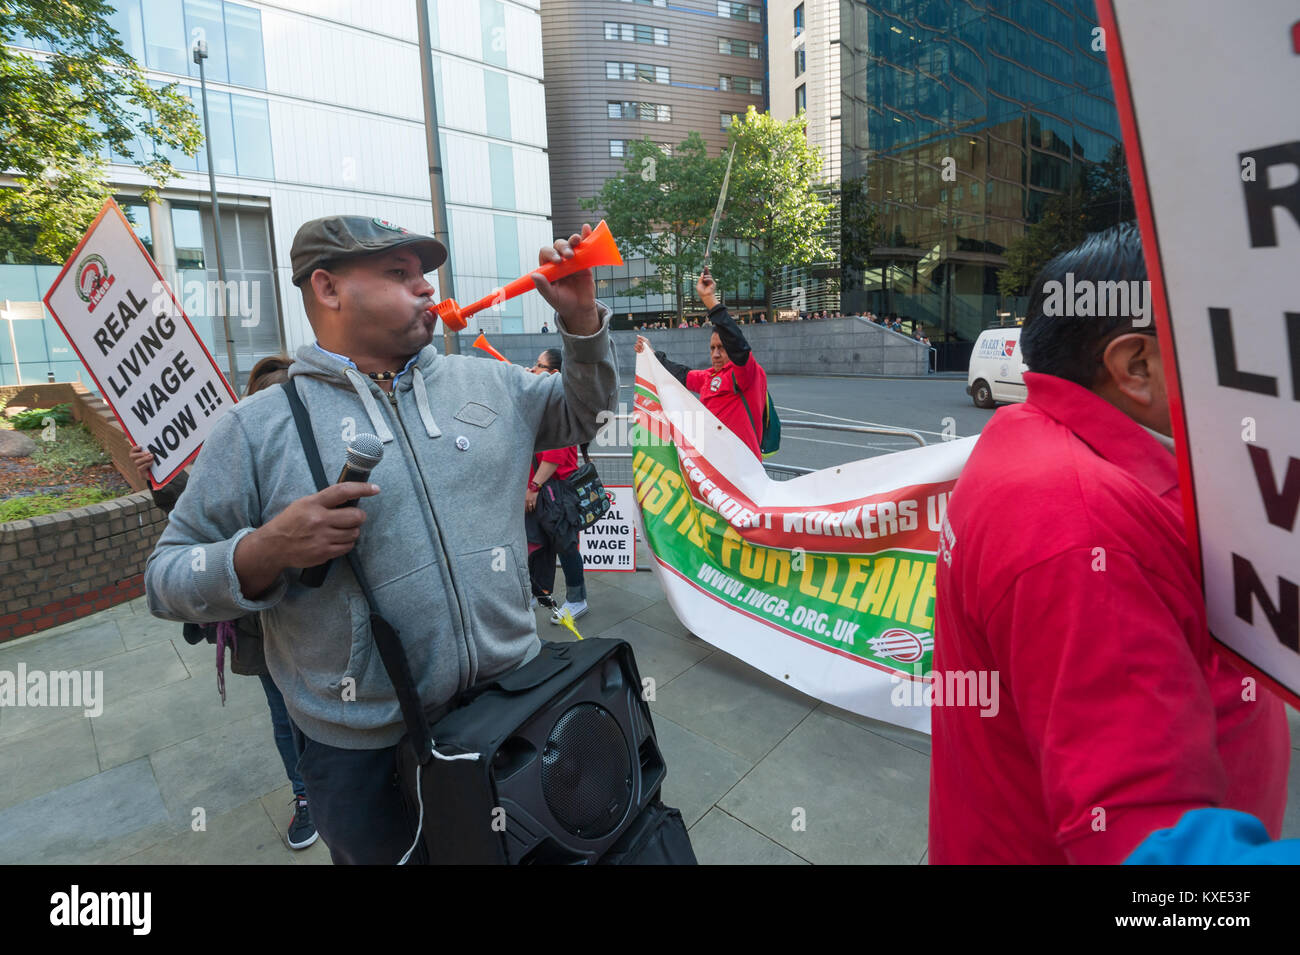 IWGB General Secretary Alberto Dutango blows a horn at the protest for the London living wage for Mitie-employed - Stock Image